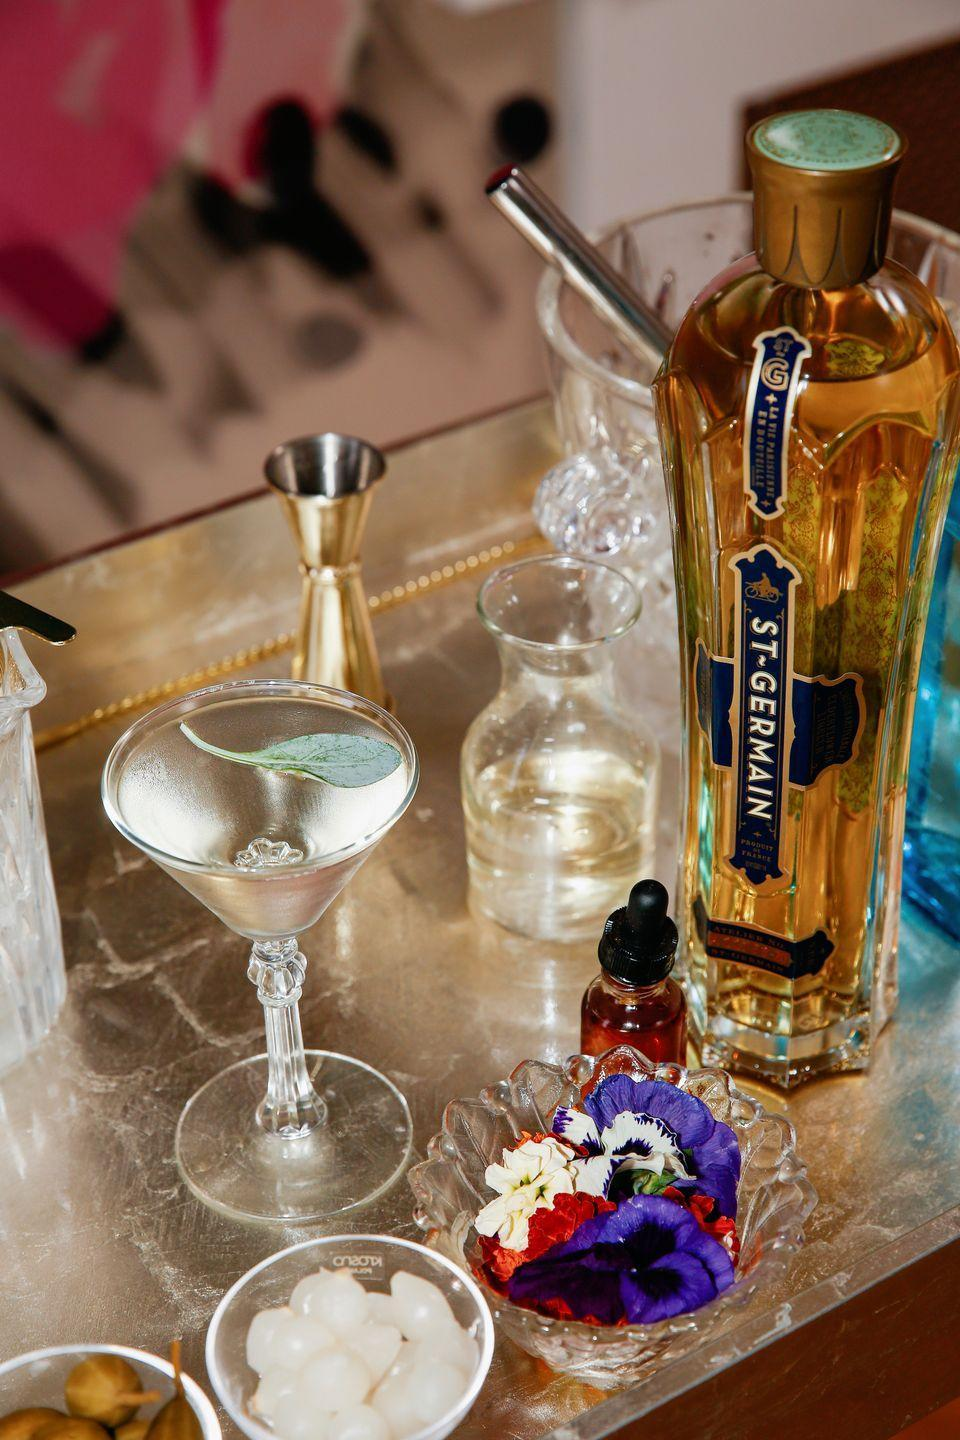 "<p>St. Germain's North American Ambassador Earlecia Richelle created this Art Deco-inspired take on the classic cocktail for celebrations big and small—be it a New Year's Eve party, a cozy Valentine's Day at home, or simply welcoming the weekend. </p><p>Get the recipe, <a href=""https://www.veranda.com/food-recipes/a35057997/earlecia-richelle-deco-martini-recipe/"" rel=""nofollow noopener"" target=""_blank"" data-ylk=""slk:here"" class=""link rapid-noclick-resp"">here</a>. </p>"